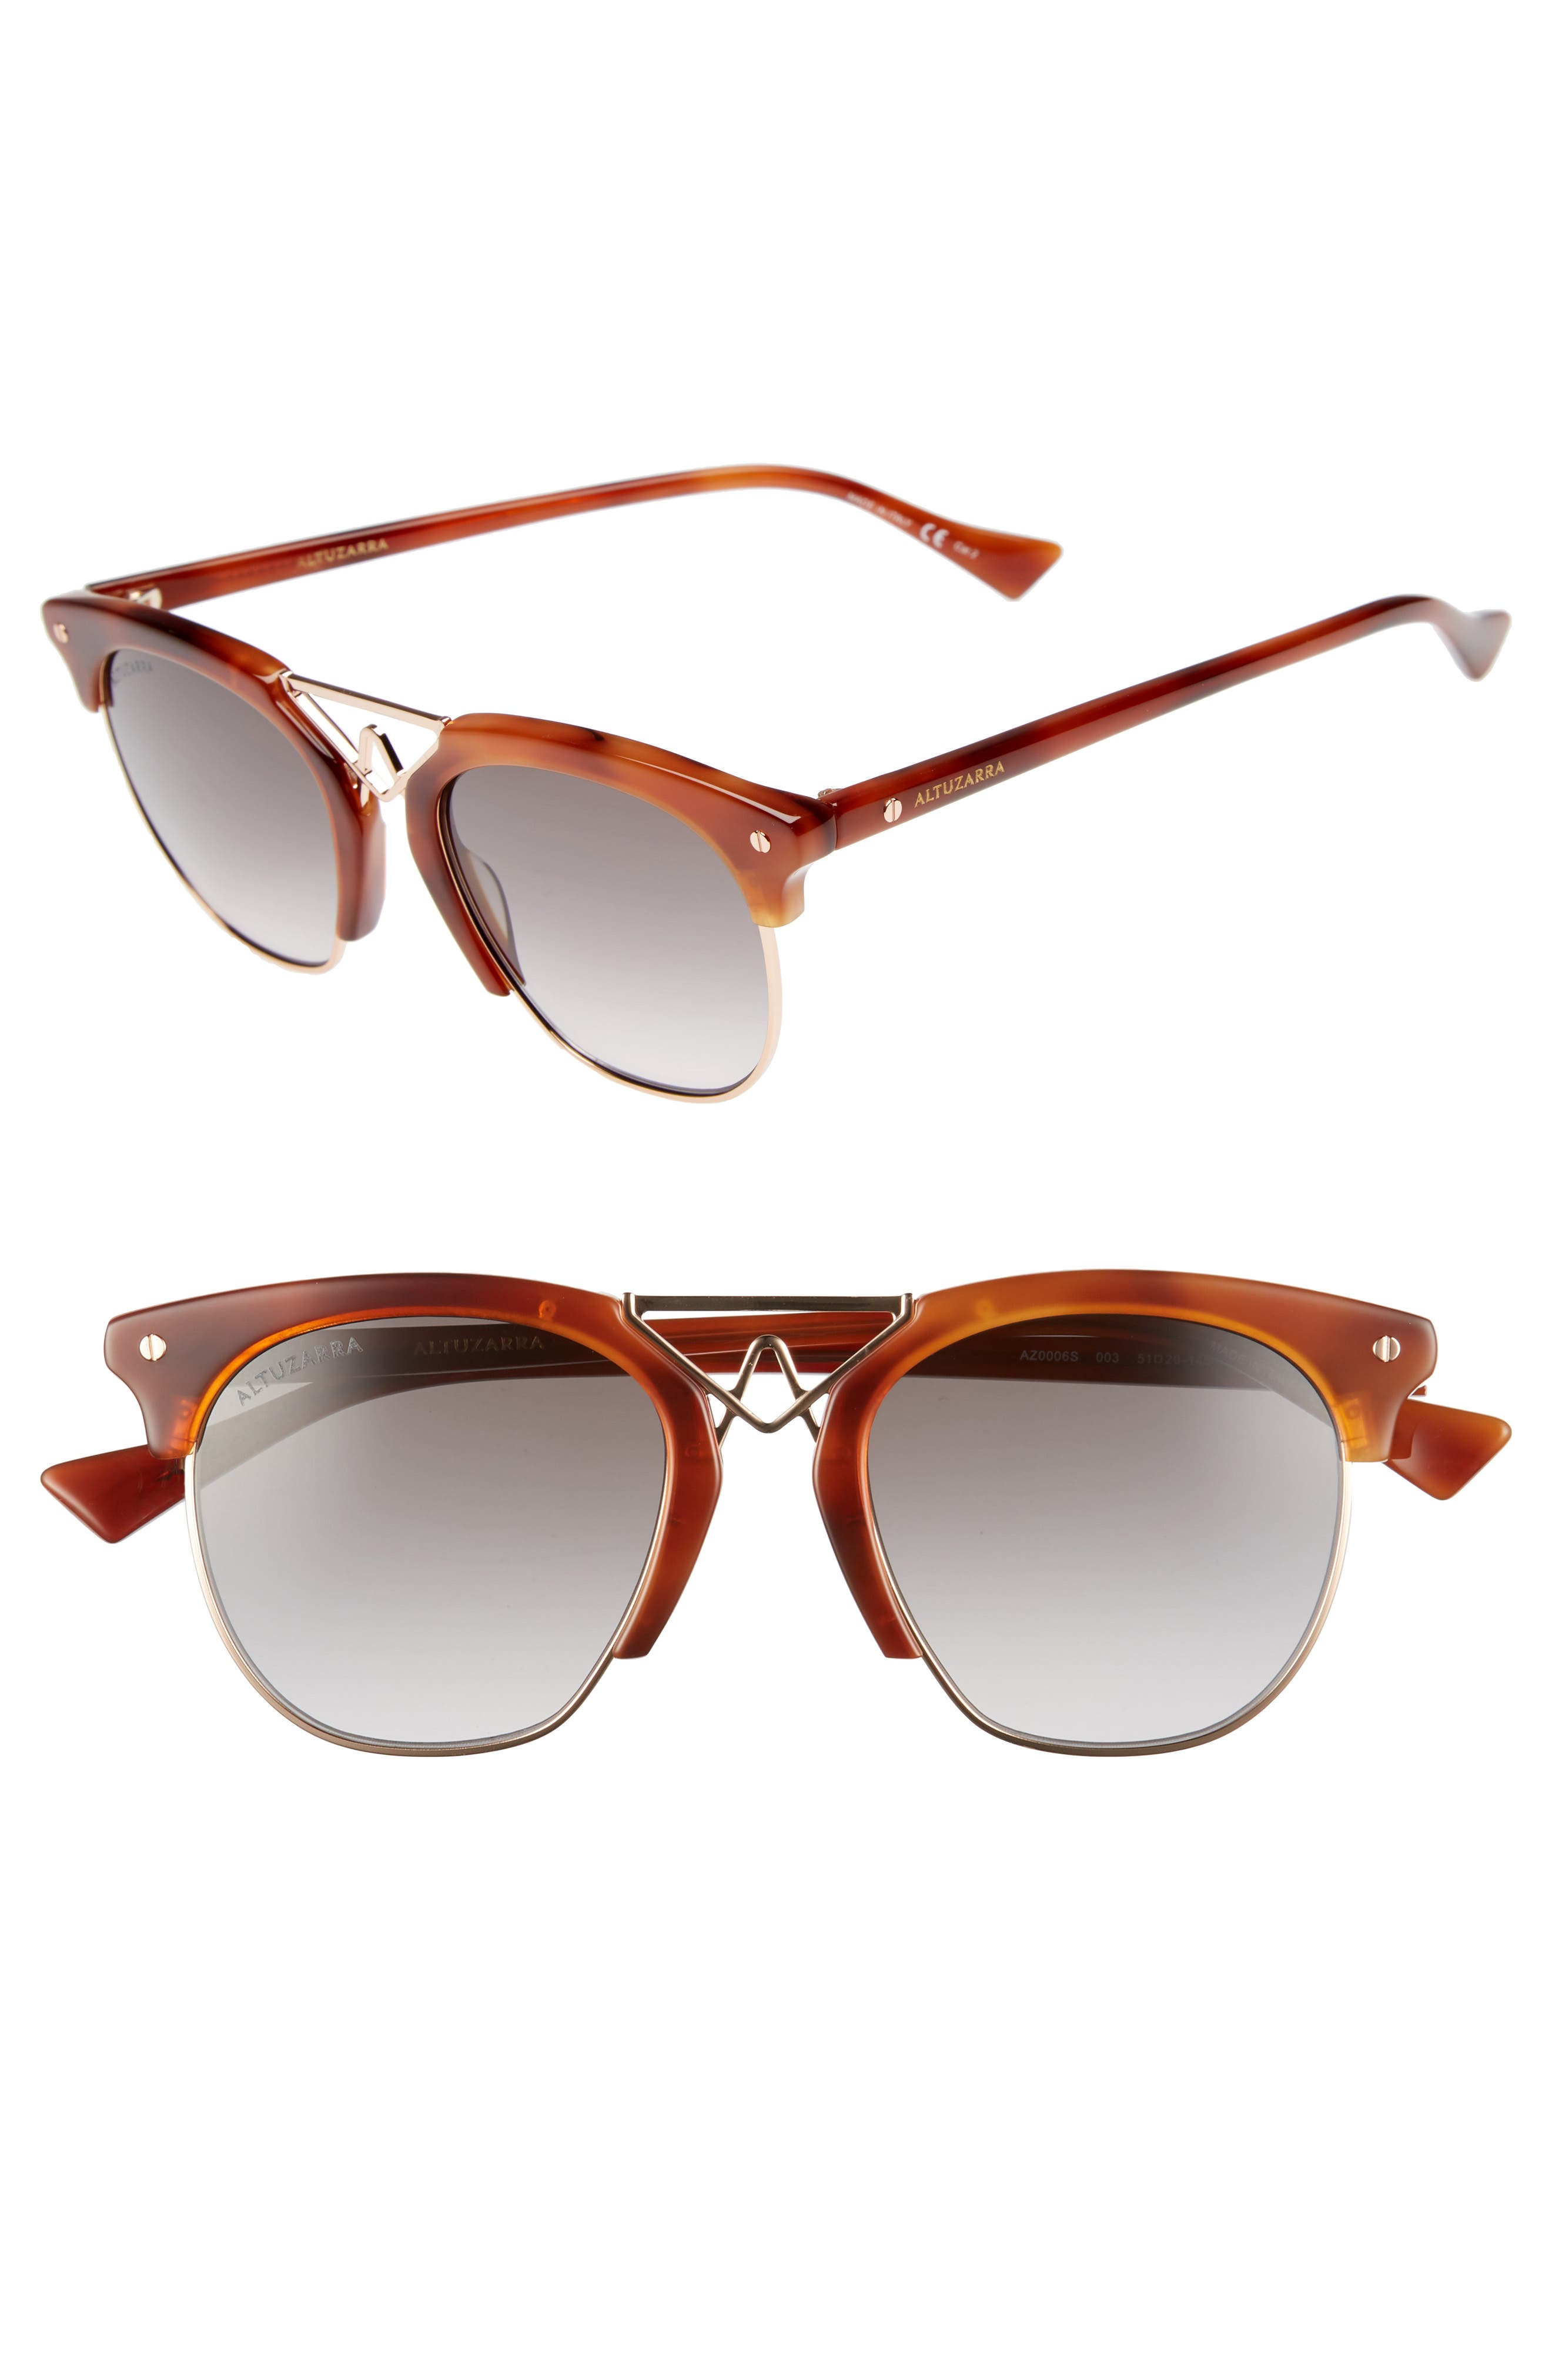 Altuzarra 51mm Round Sunglasses